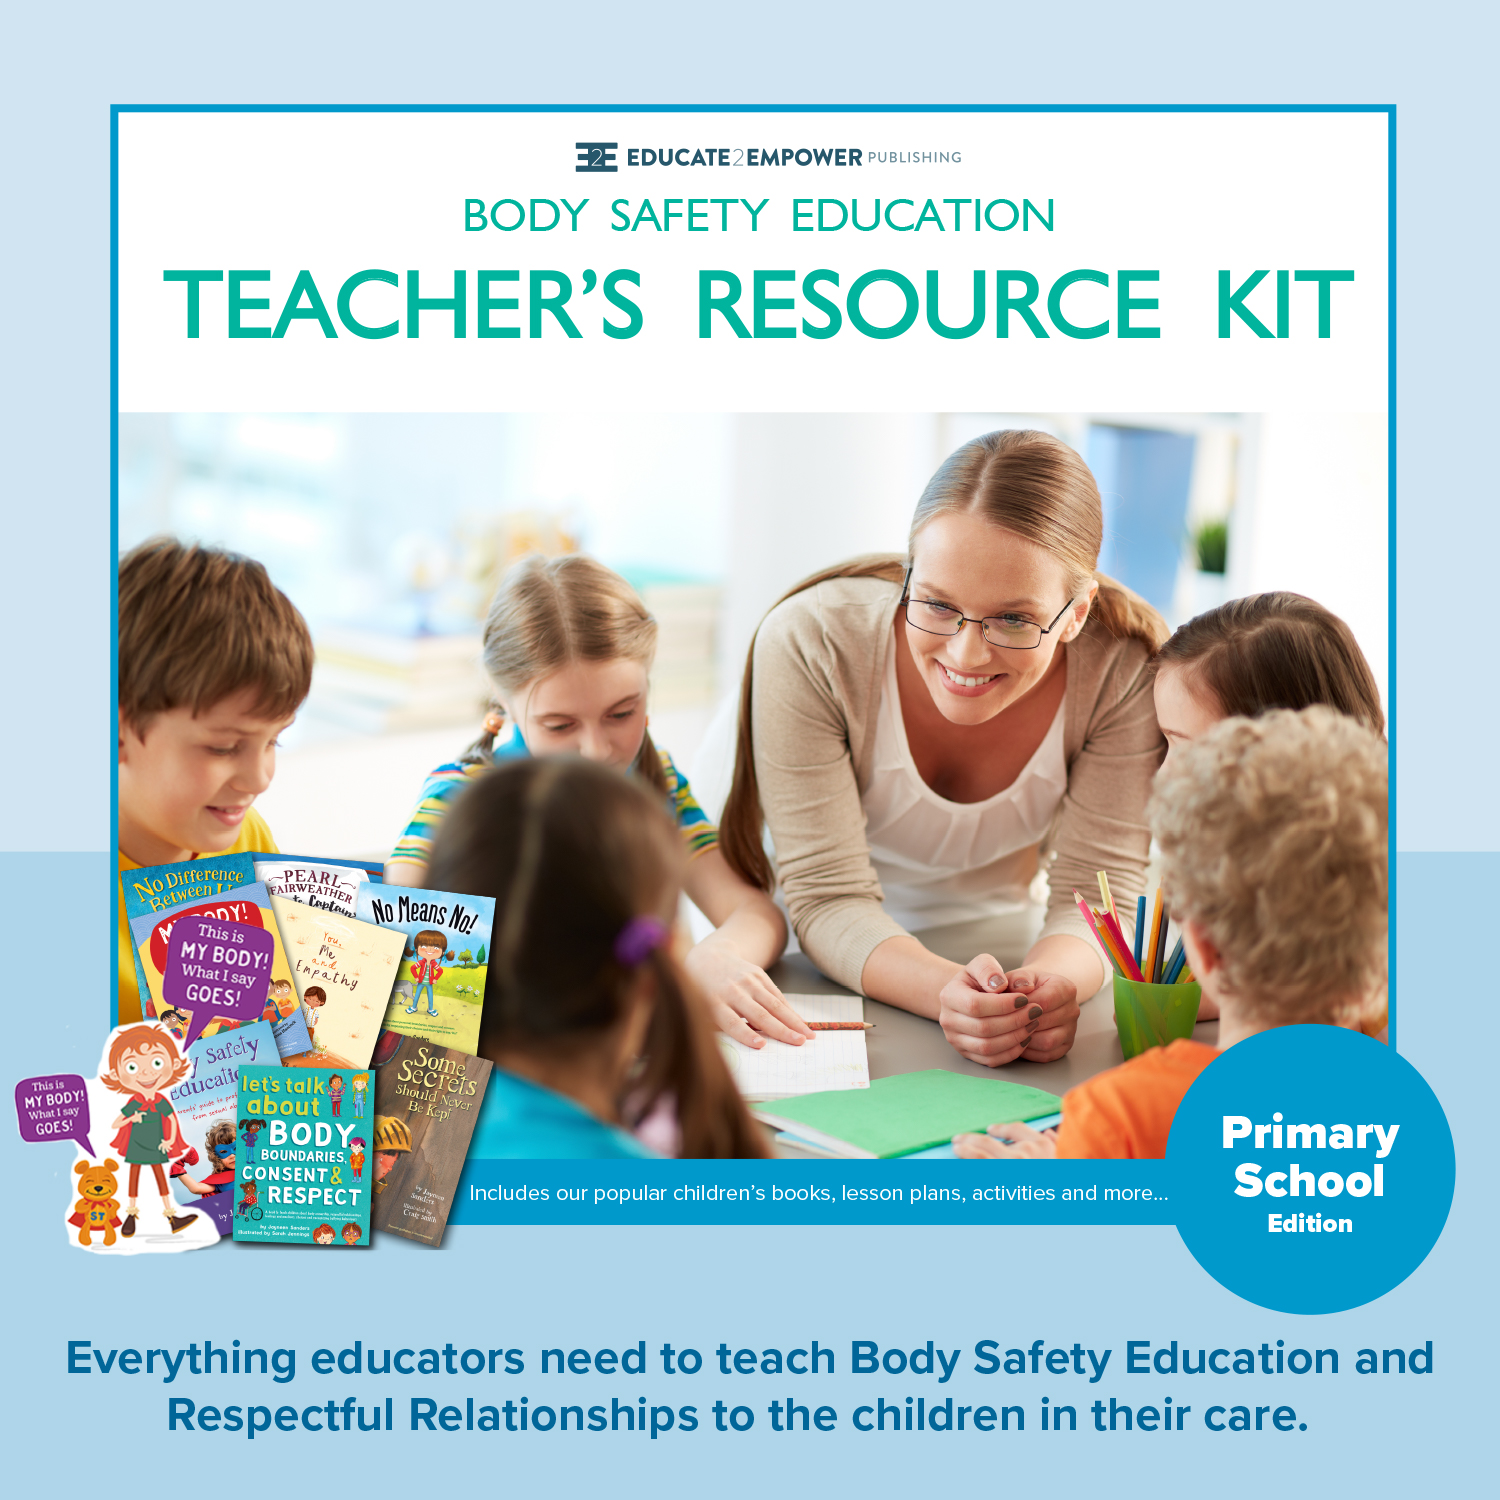 - Find out more about ourPrimary School Teacher's Resource Kit